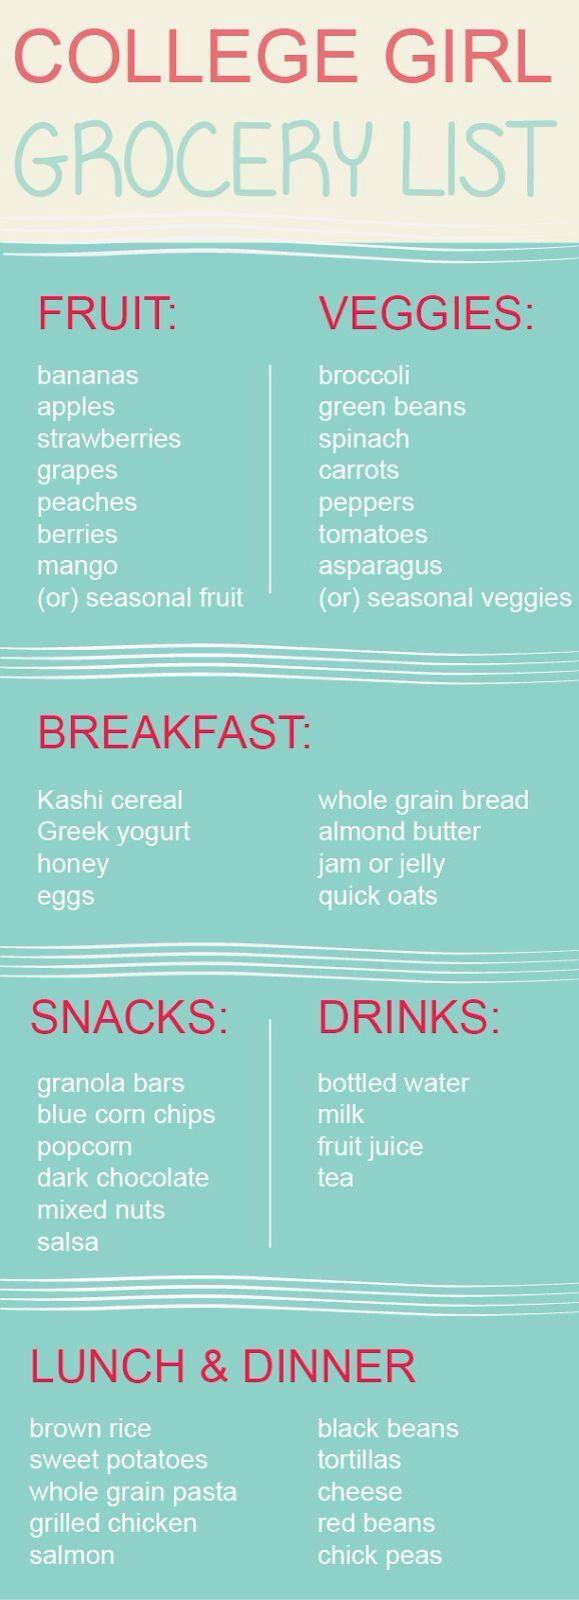 This is a bit much, but it's definitely helpful for staying healthy in school.